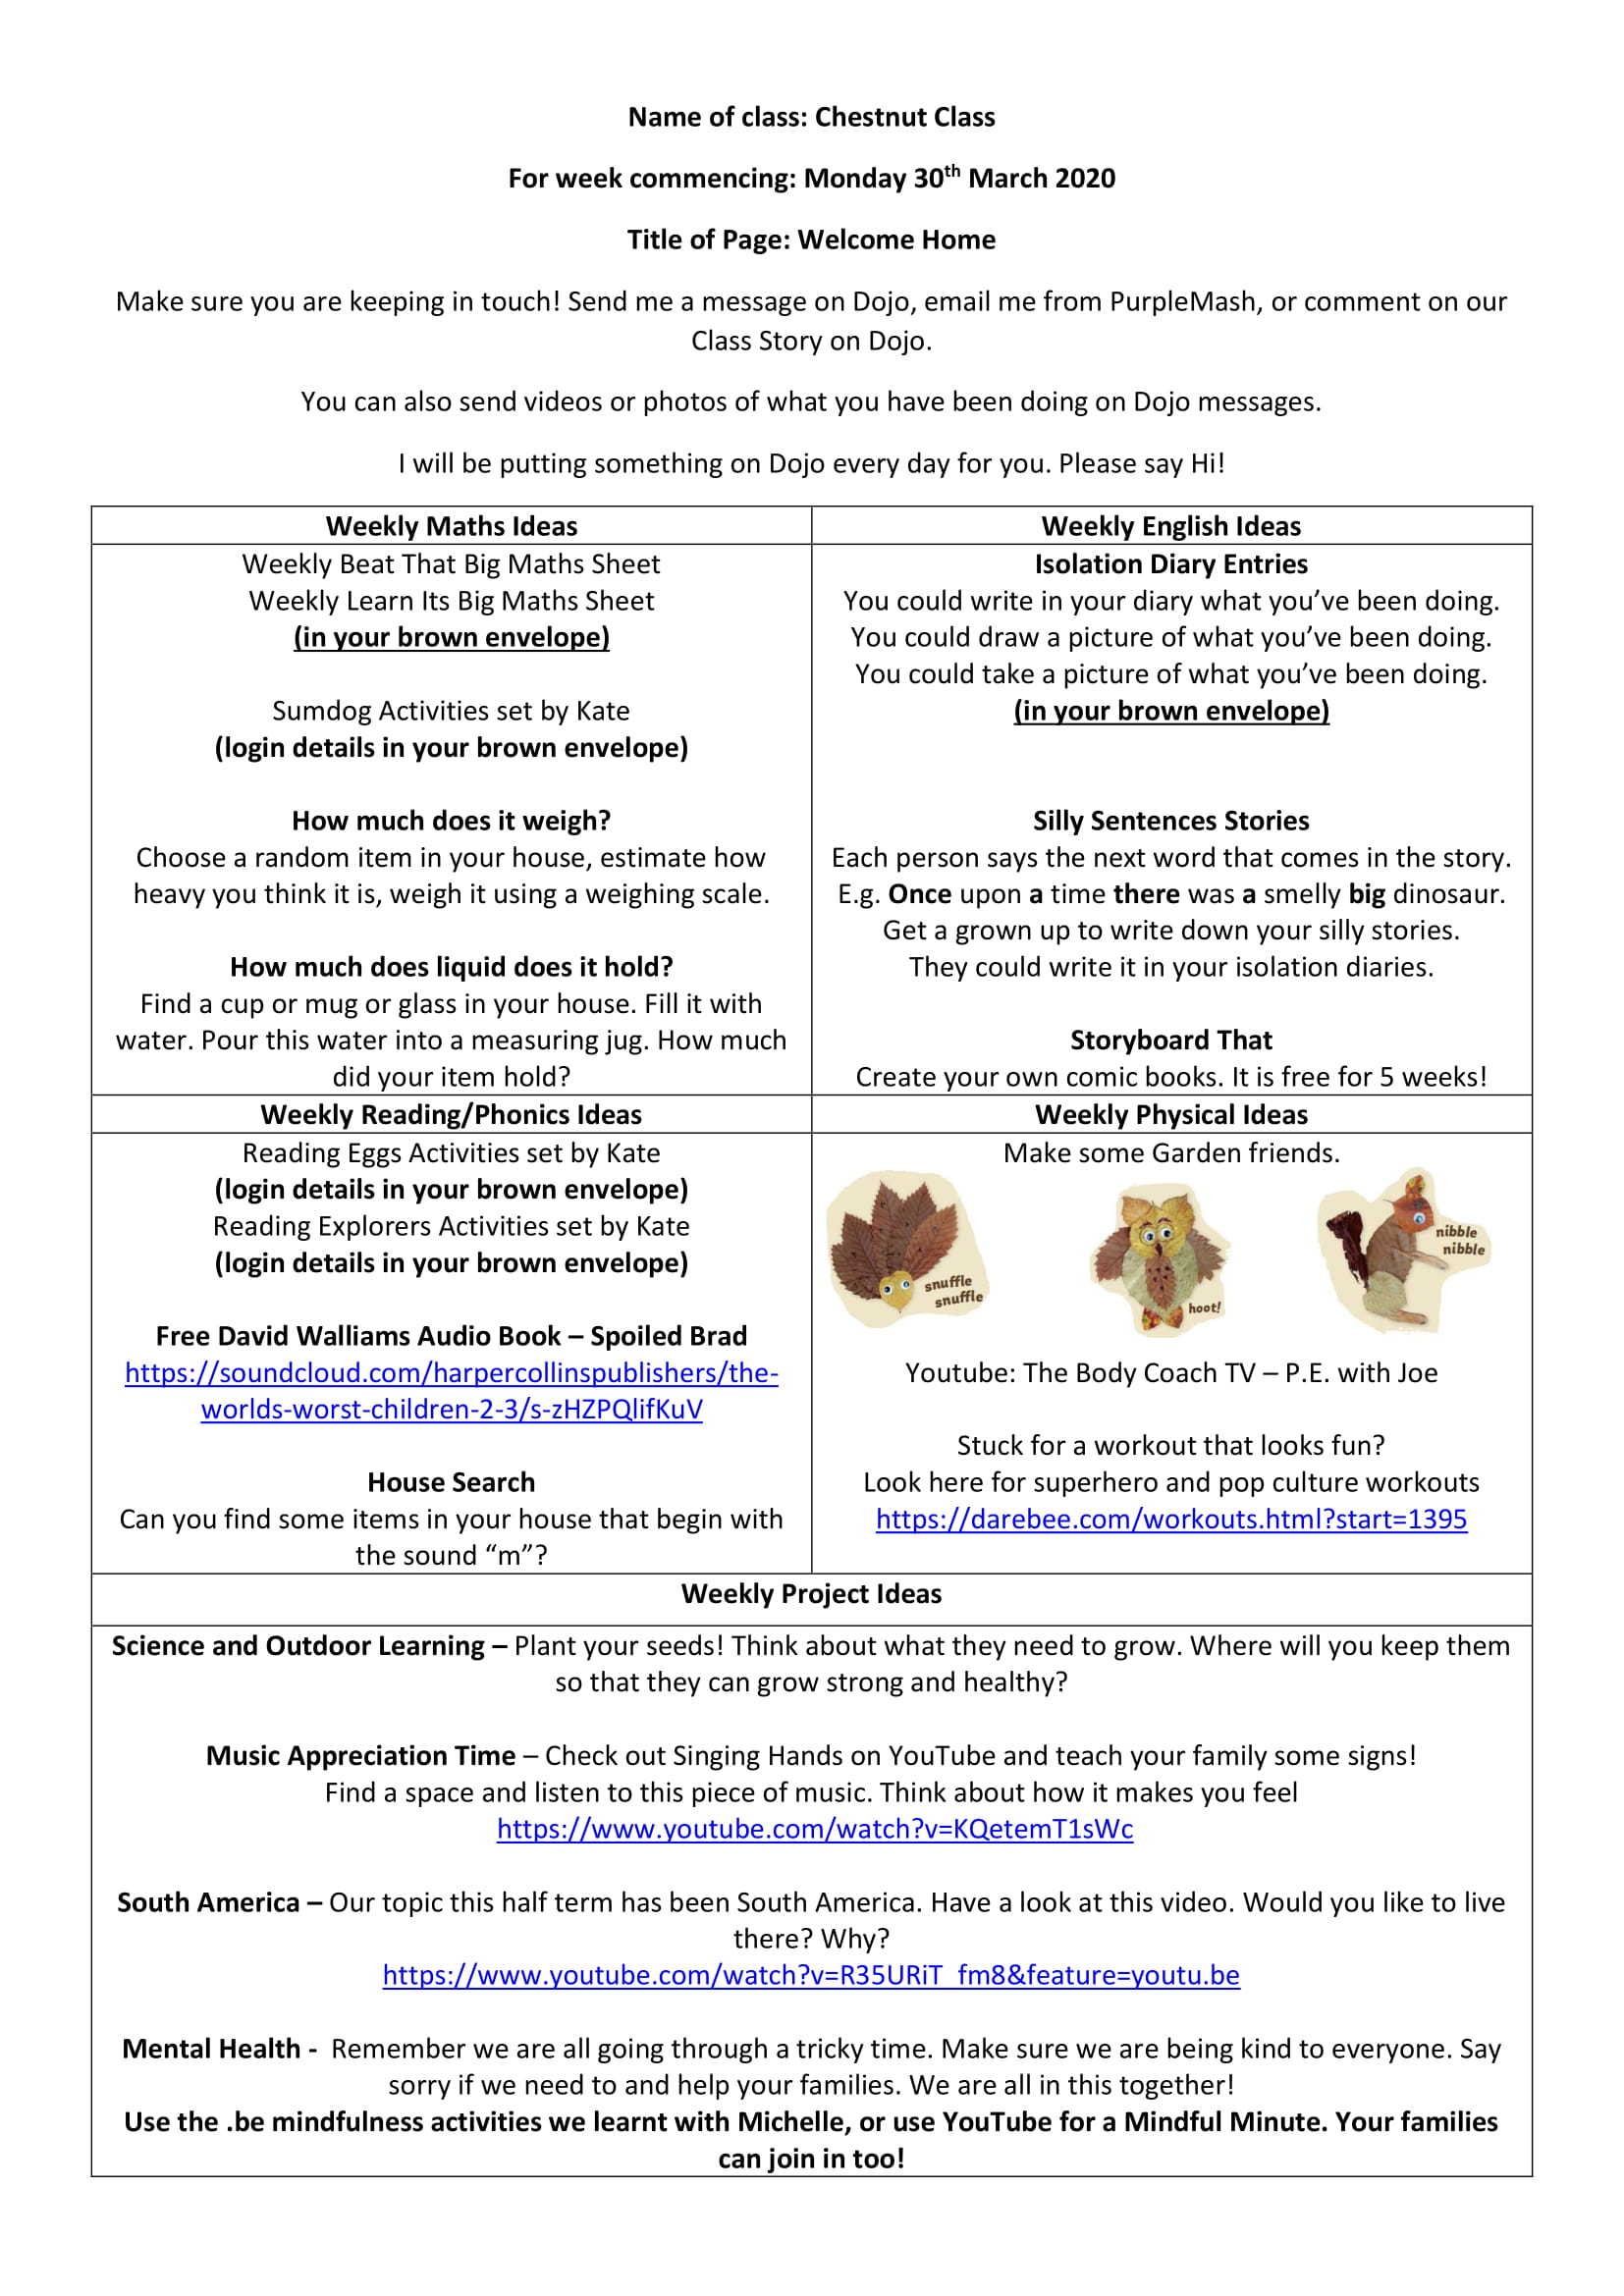 Chestnut Weekly Activities for 30th March 2020-1